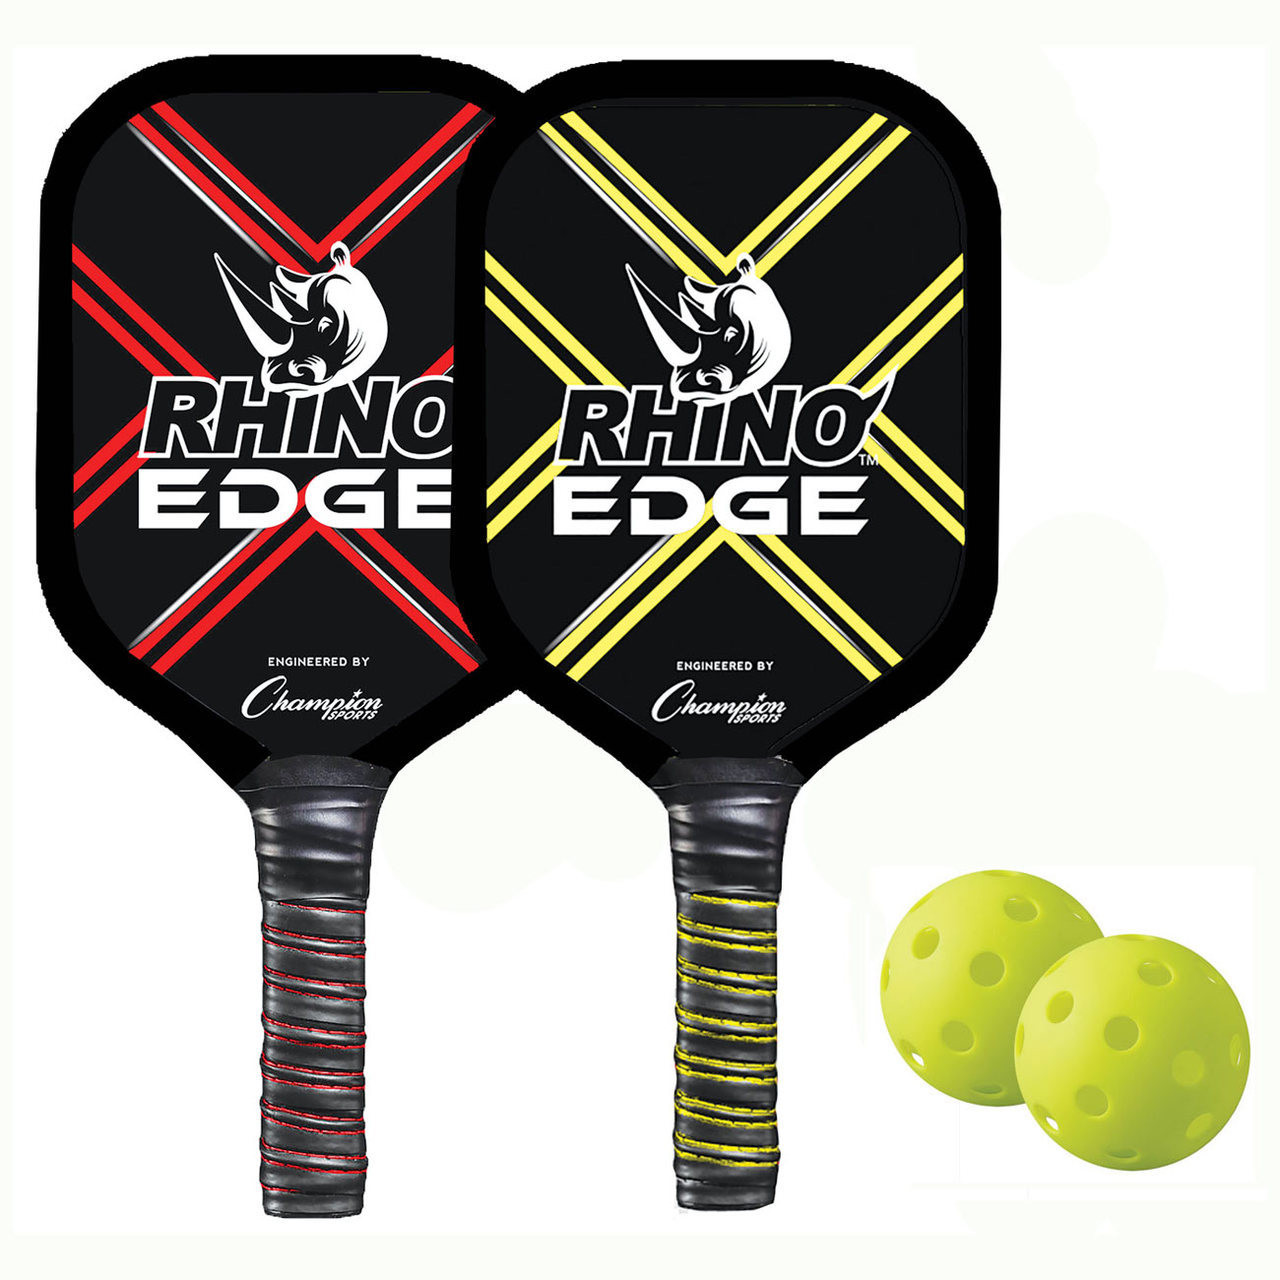 Rhino Edge 2 Player Wooden Pickleball Set